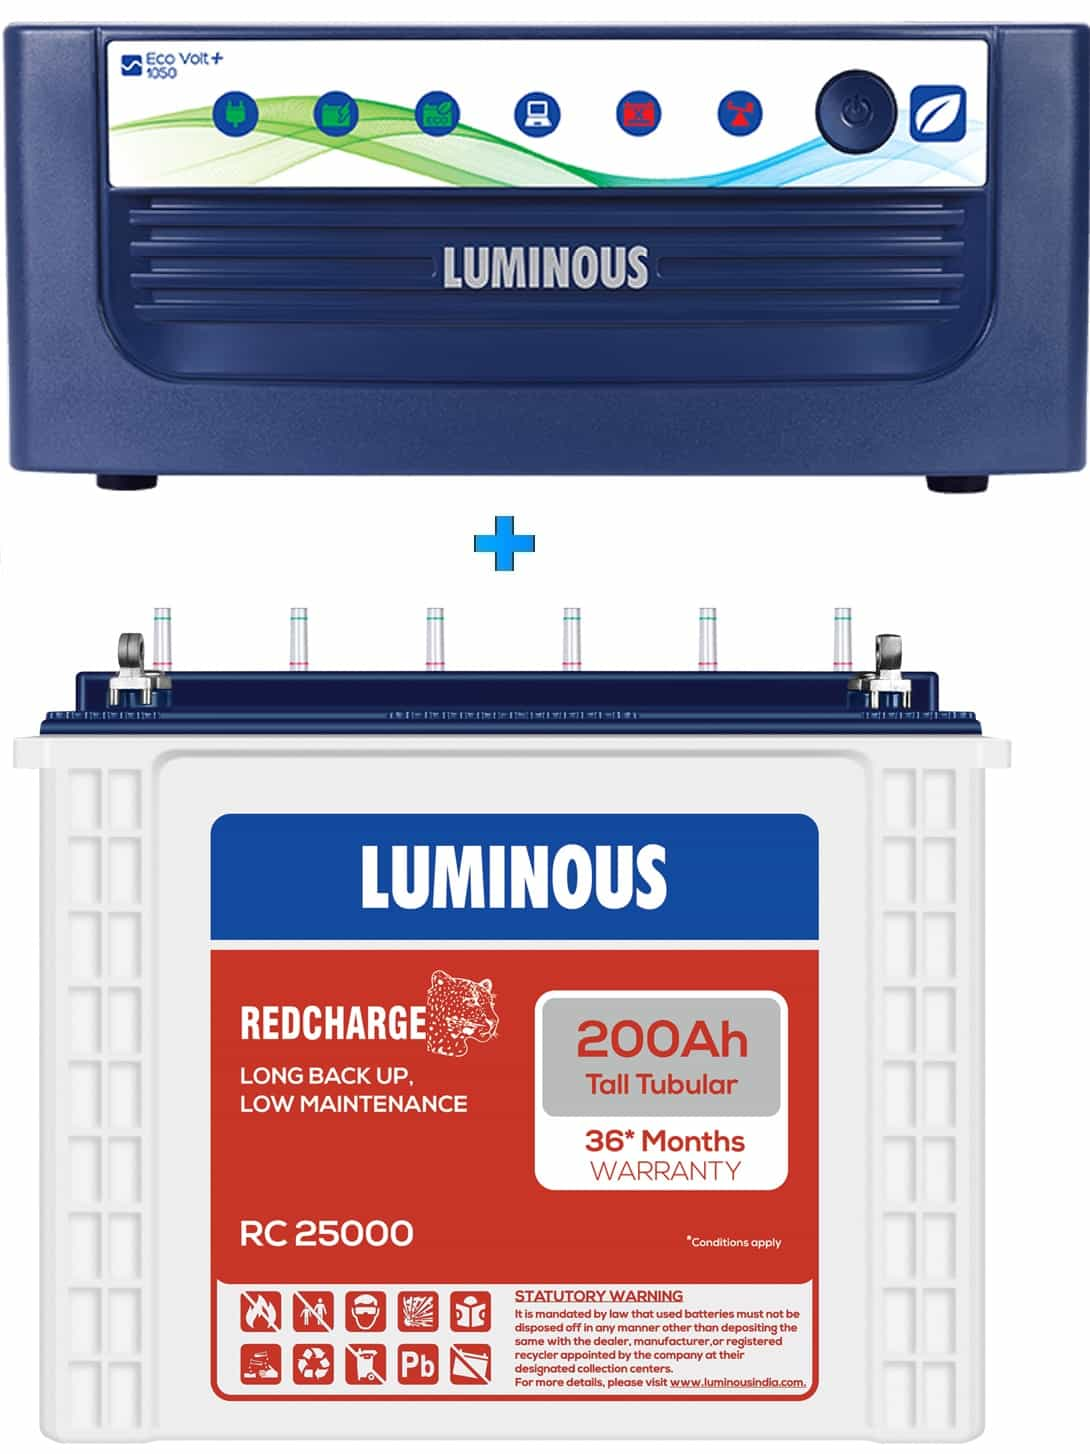 LUMINOUS ECO VOLT NEO 1050 + RC25000 200AH